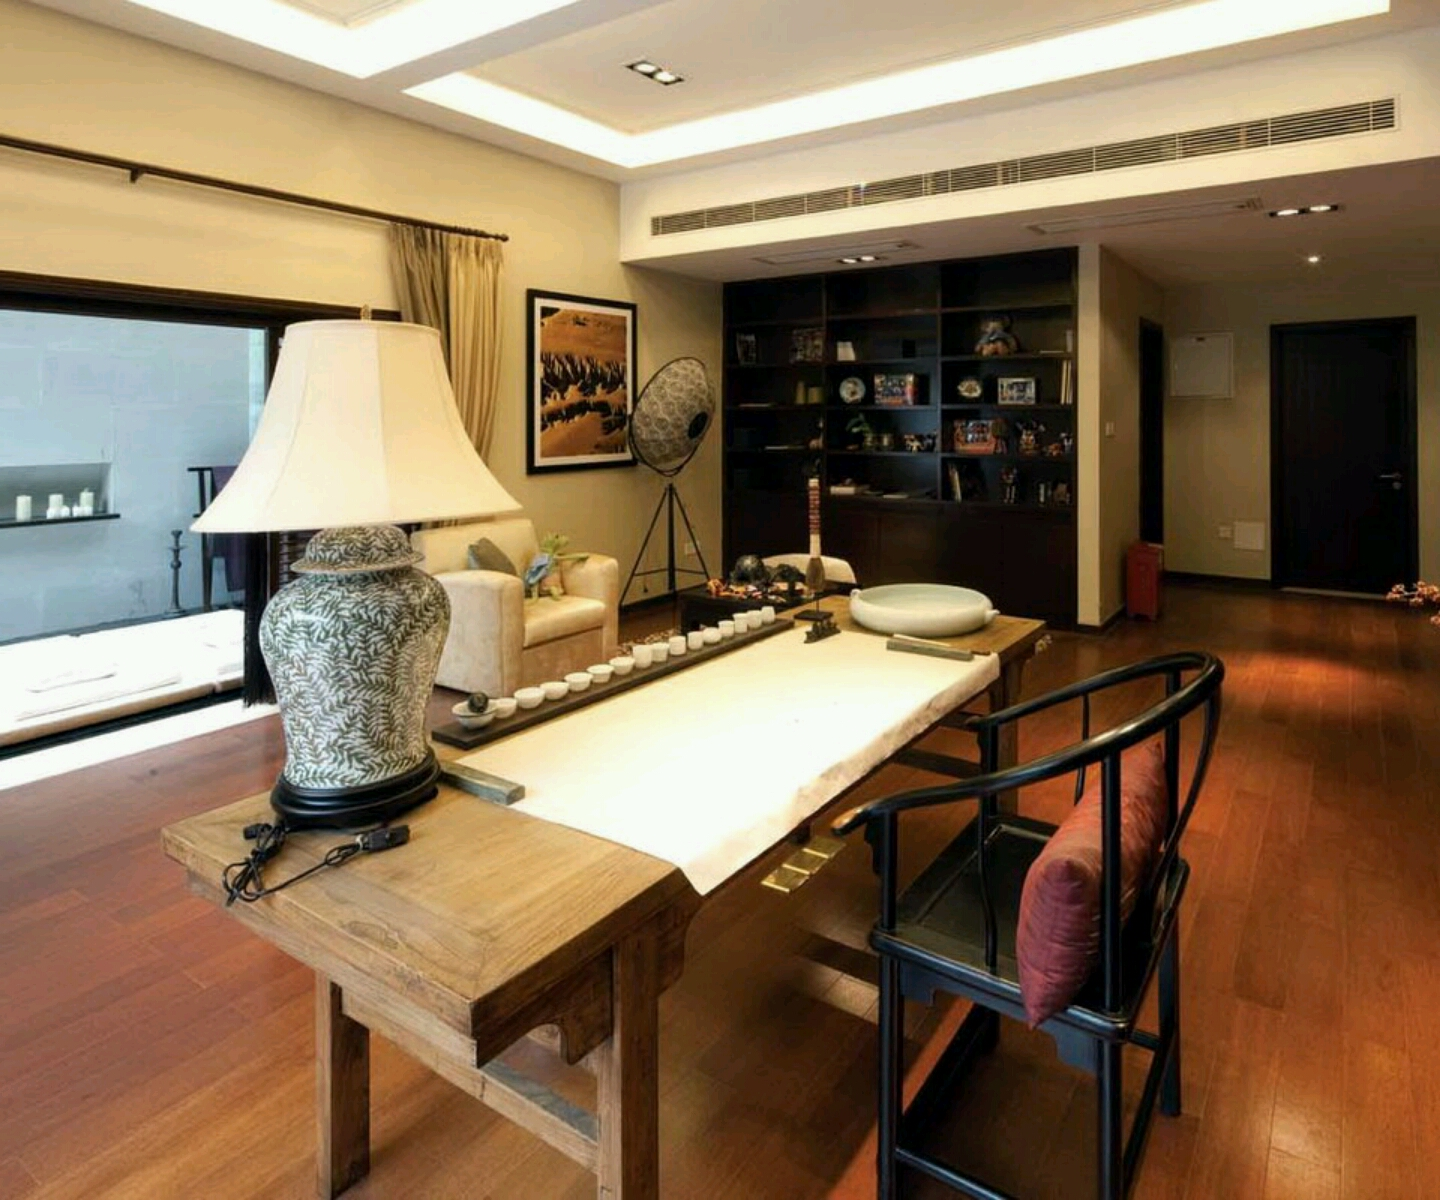 New Home Designs Latest Homes Interior Designs Studyrooms: Rumah Rumah Minimalis: Modern Homes Interior Designs